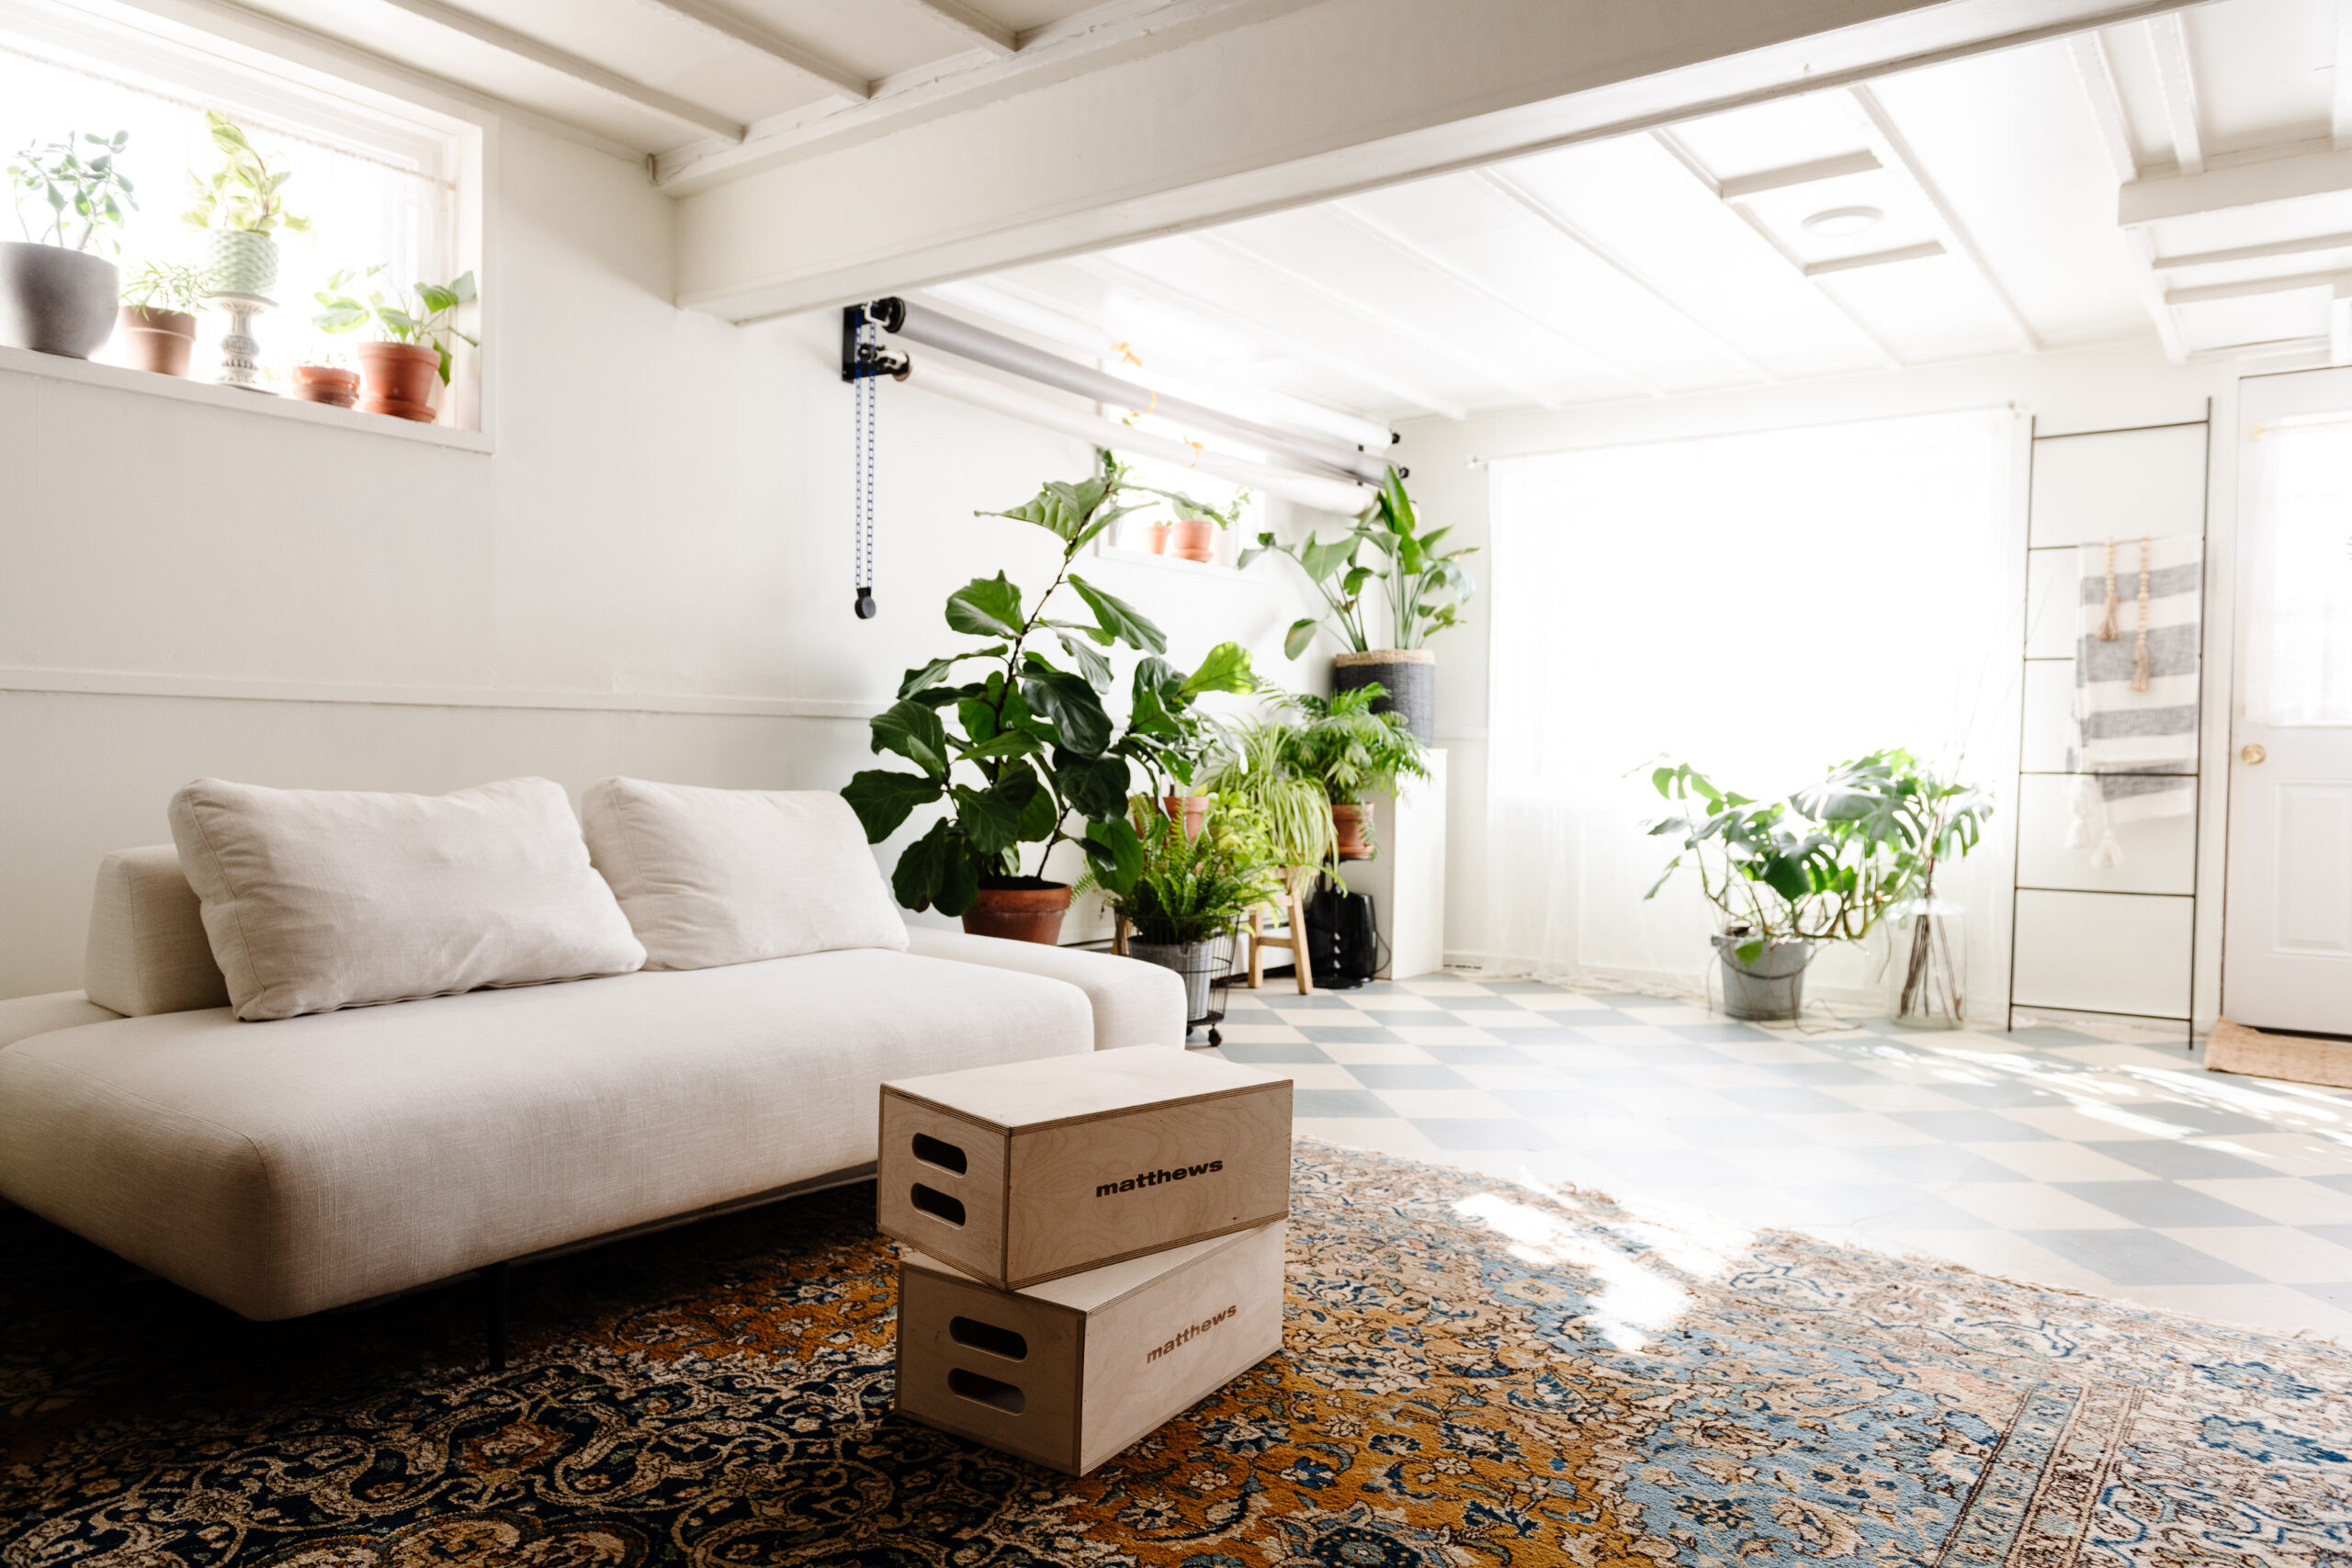 bohemian studio with apple boxes, house plants, persian rug and natural light